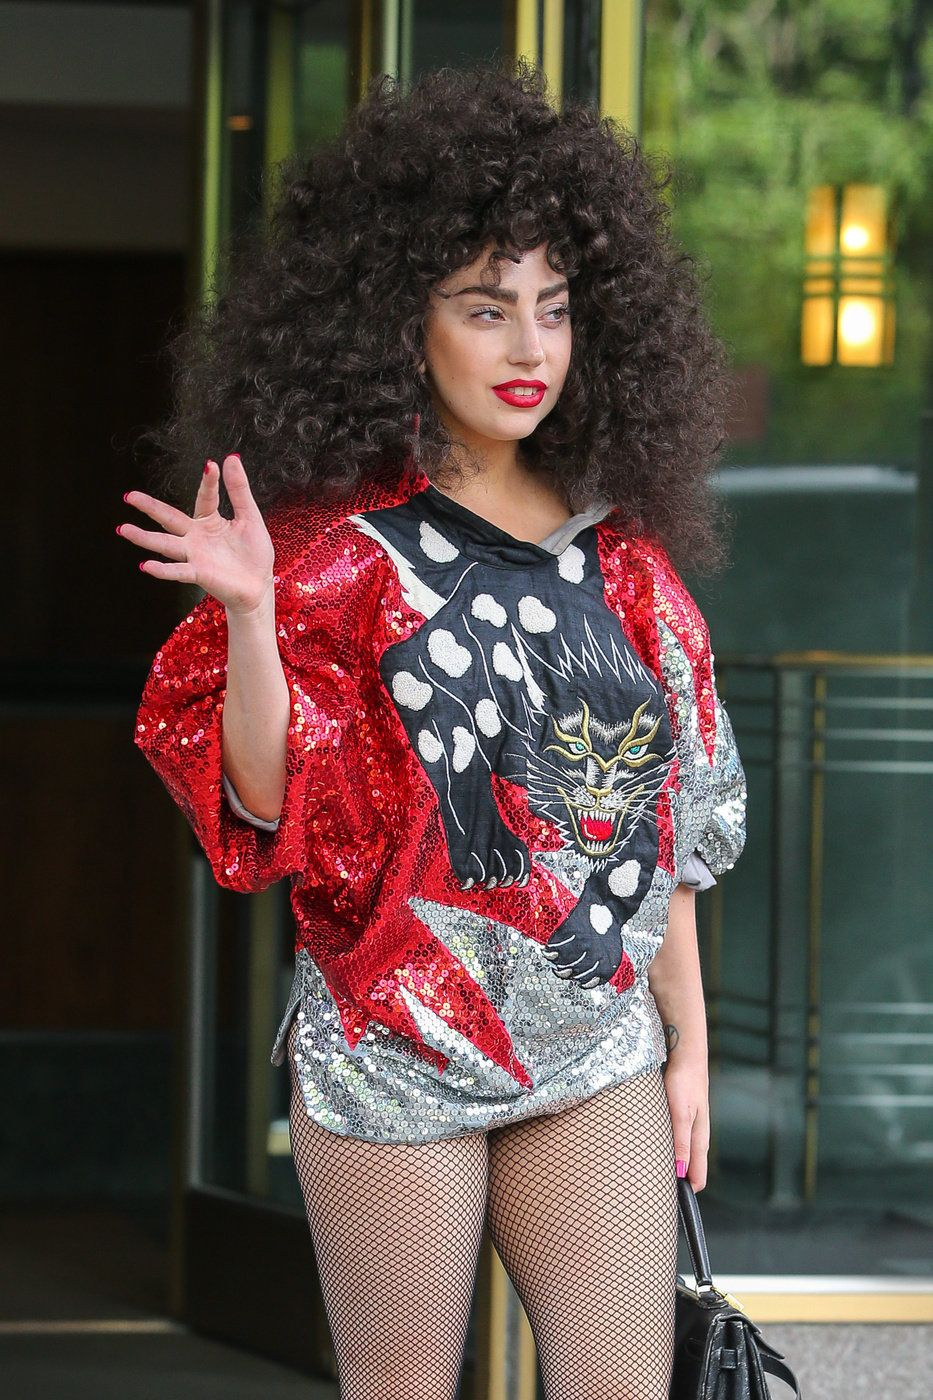 Lady Gaga rocked some 80's style while leaving her apartment building in New York City on June 6.